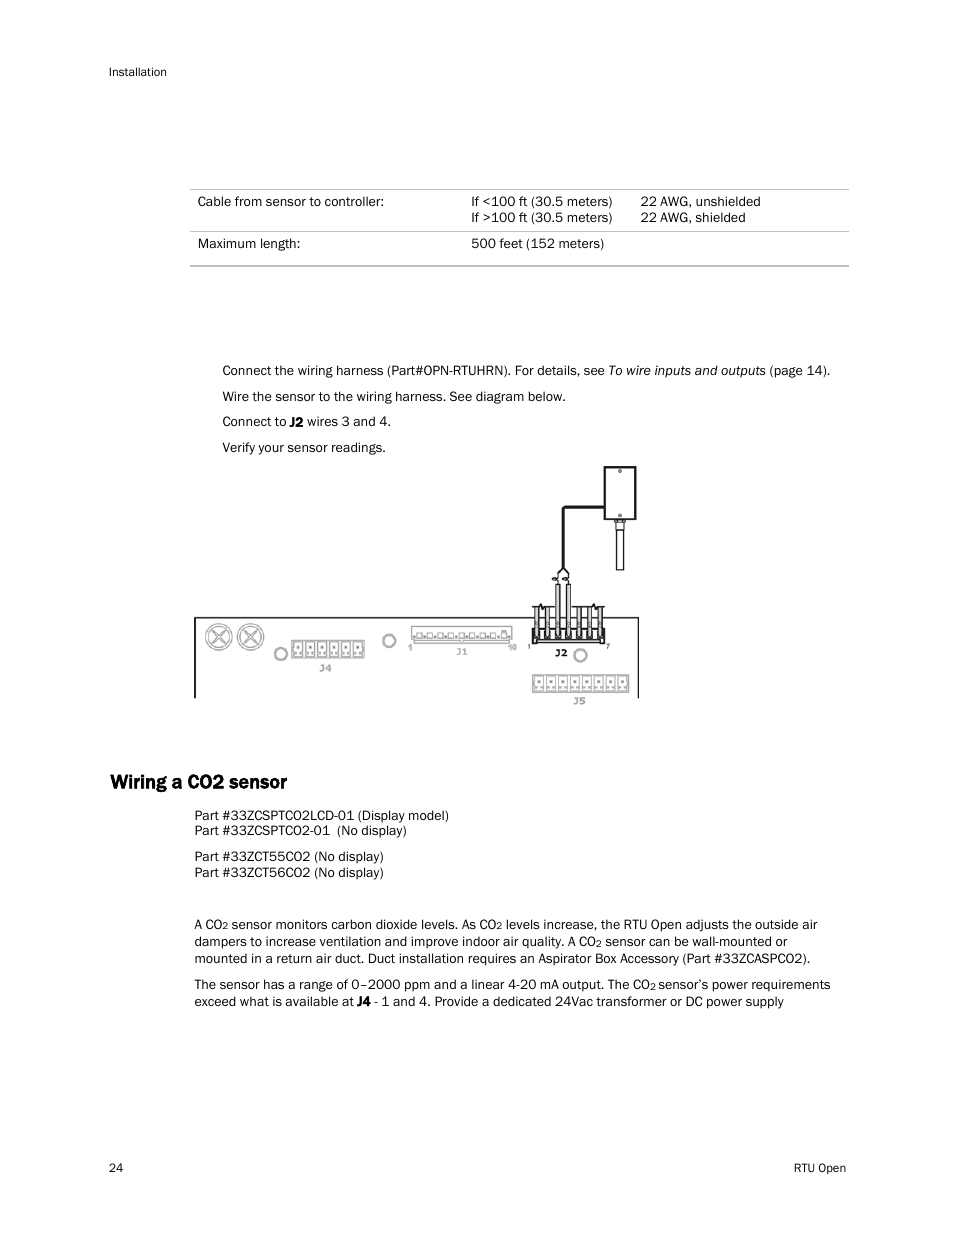 hight resolution of wiring specifications to wire an oat sensor to the controller wiring a co2 sensor carrier rtu open 11 808 427 01 user manual page 30 88